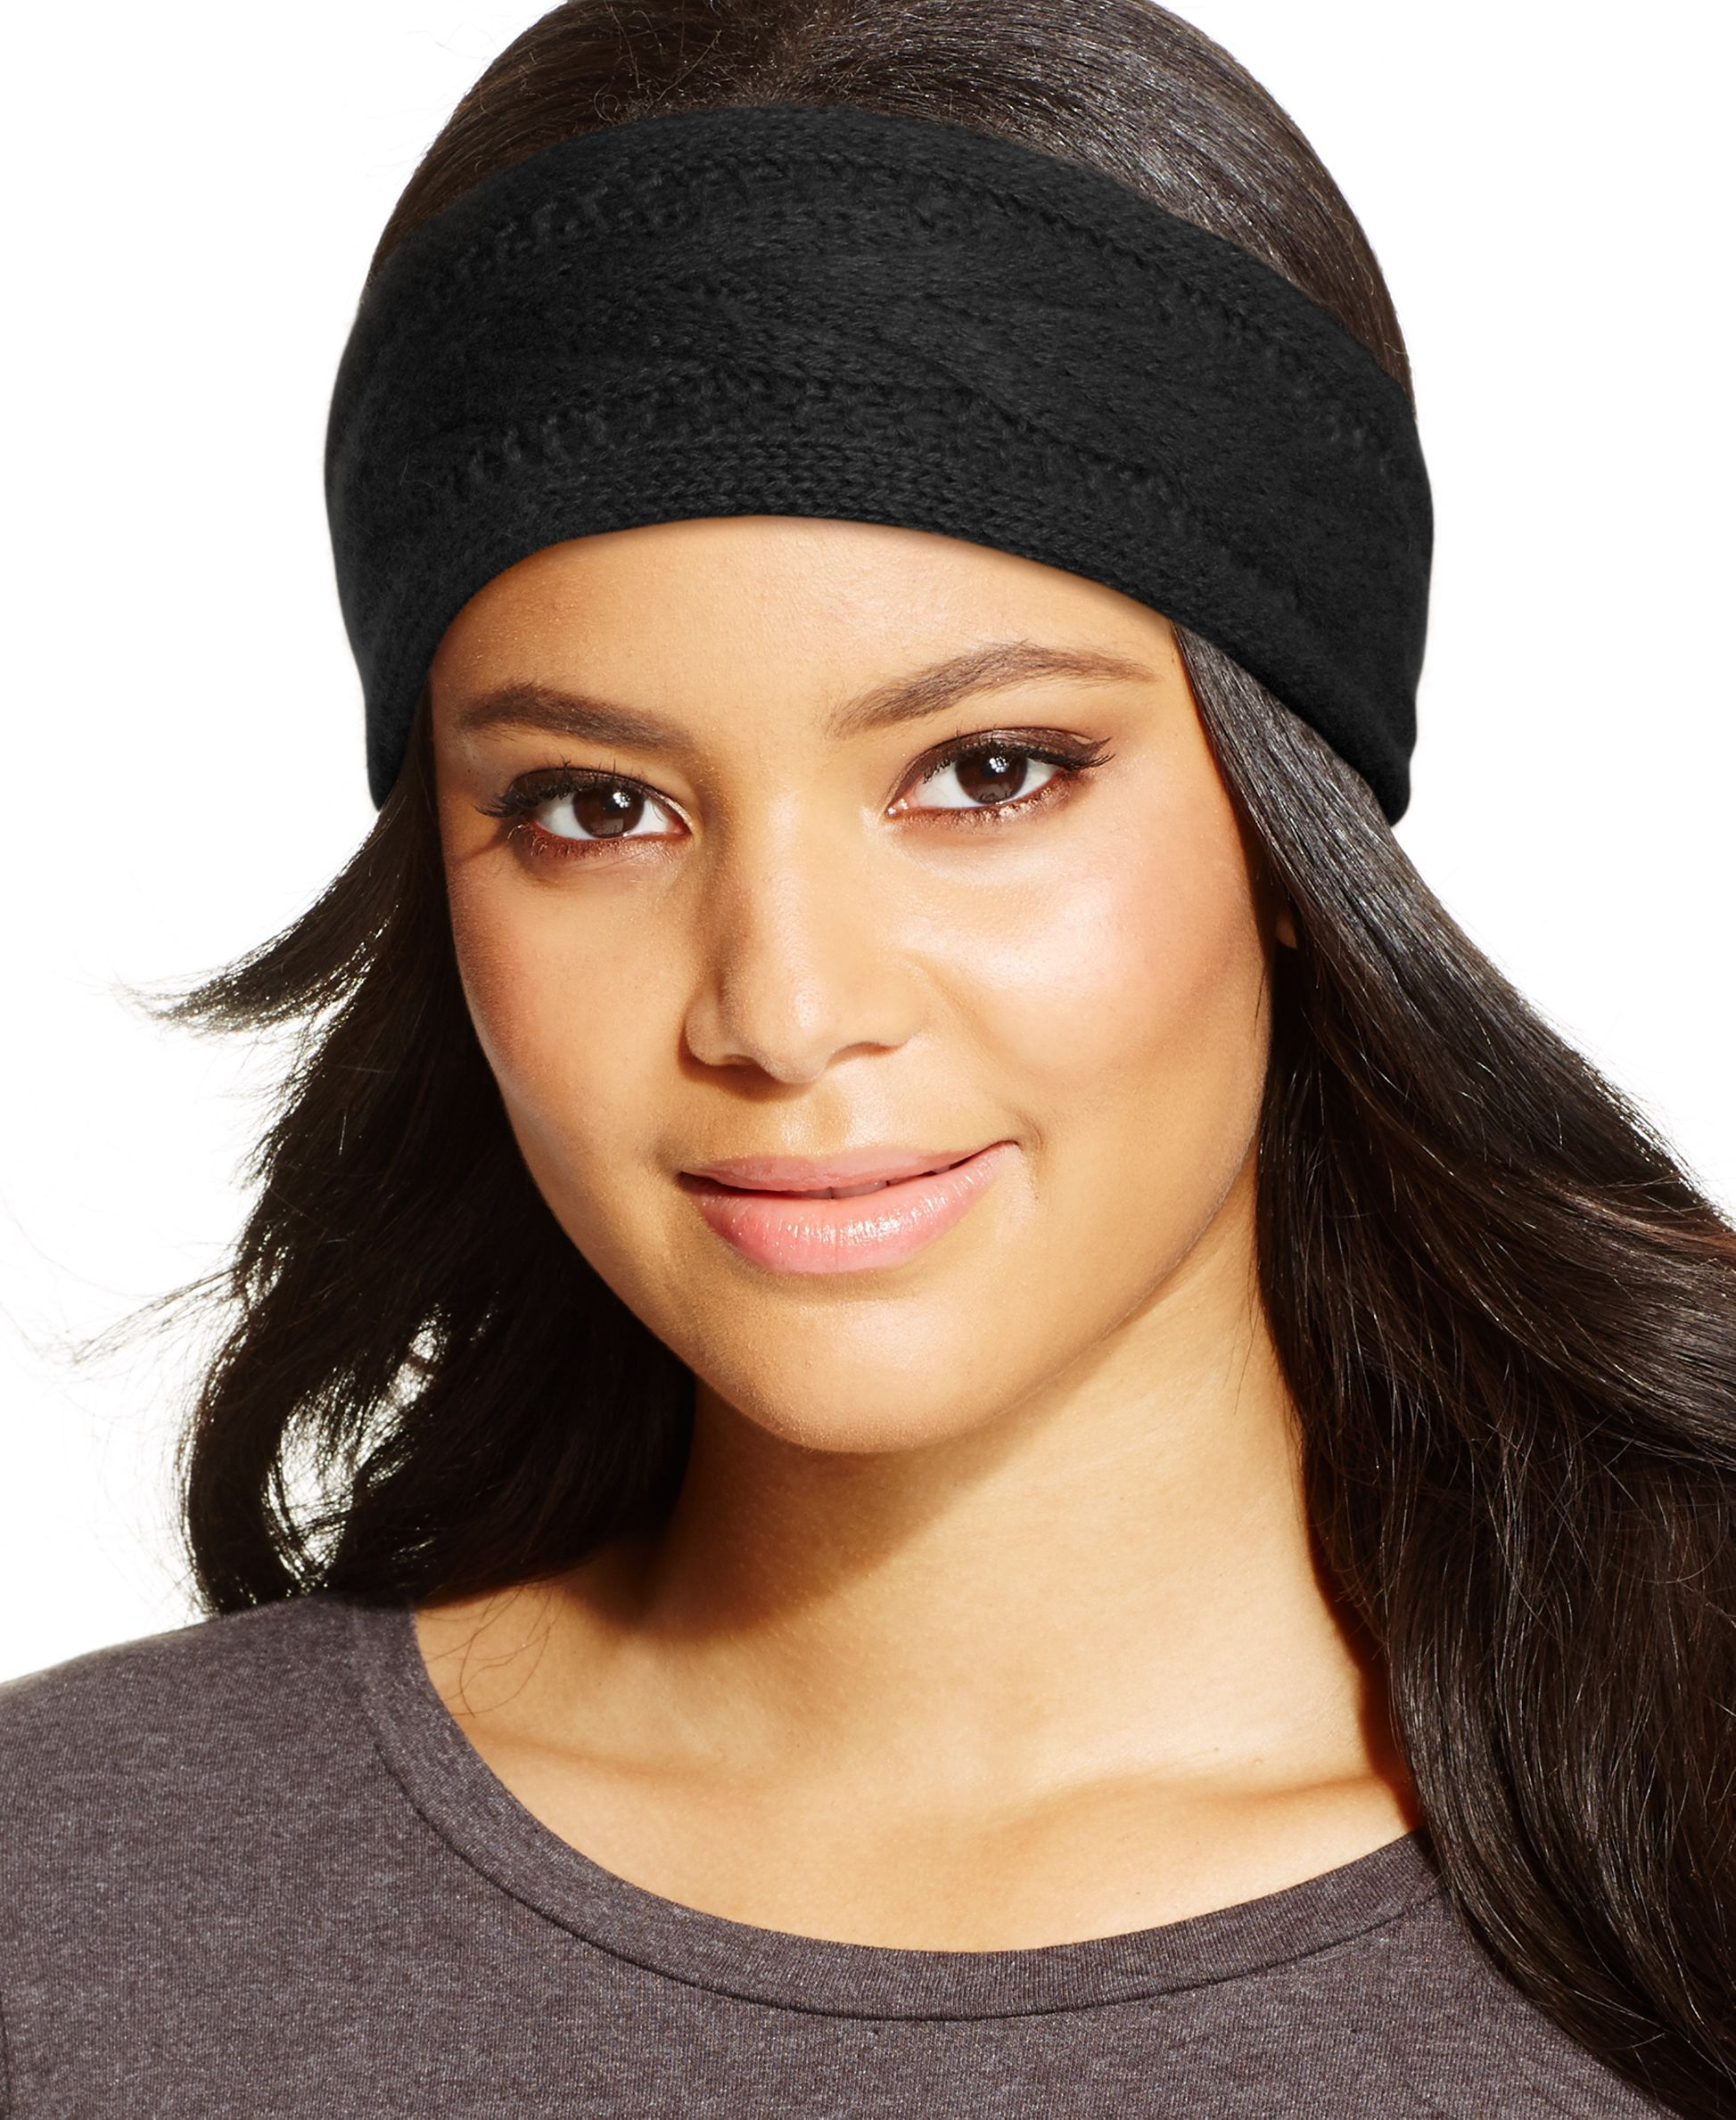 816d1193624f1 Charter Club Cashmere Cable Knit Headband